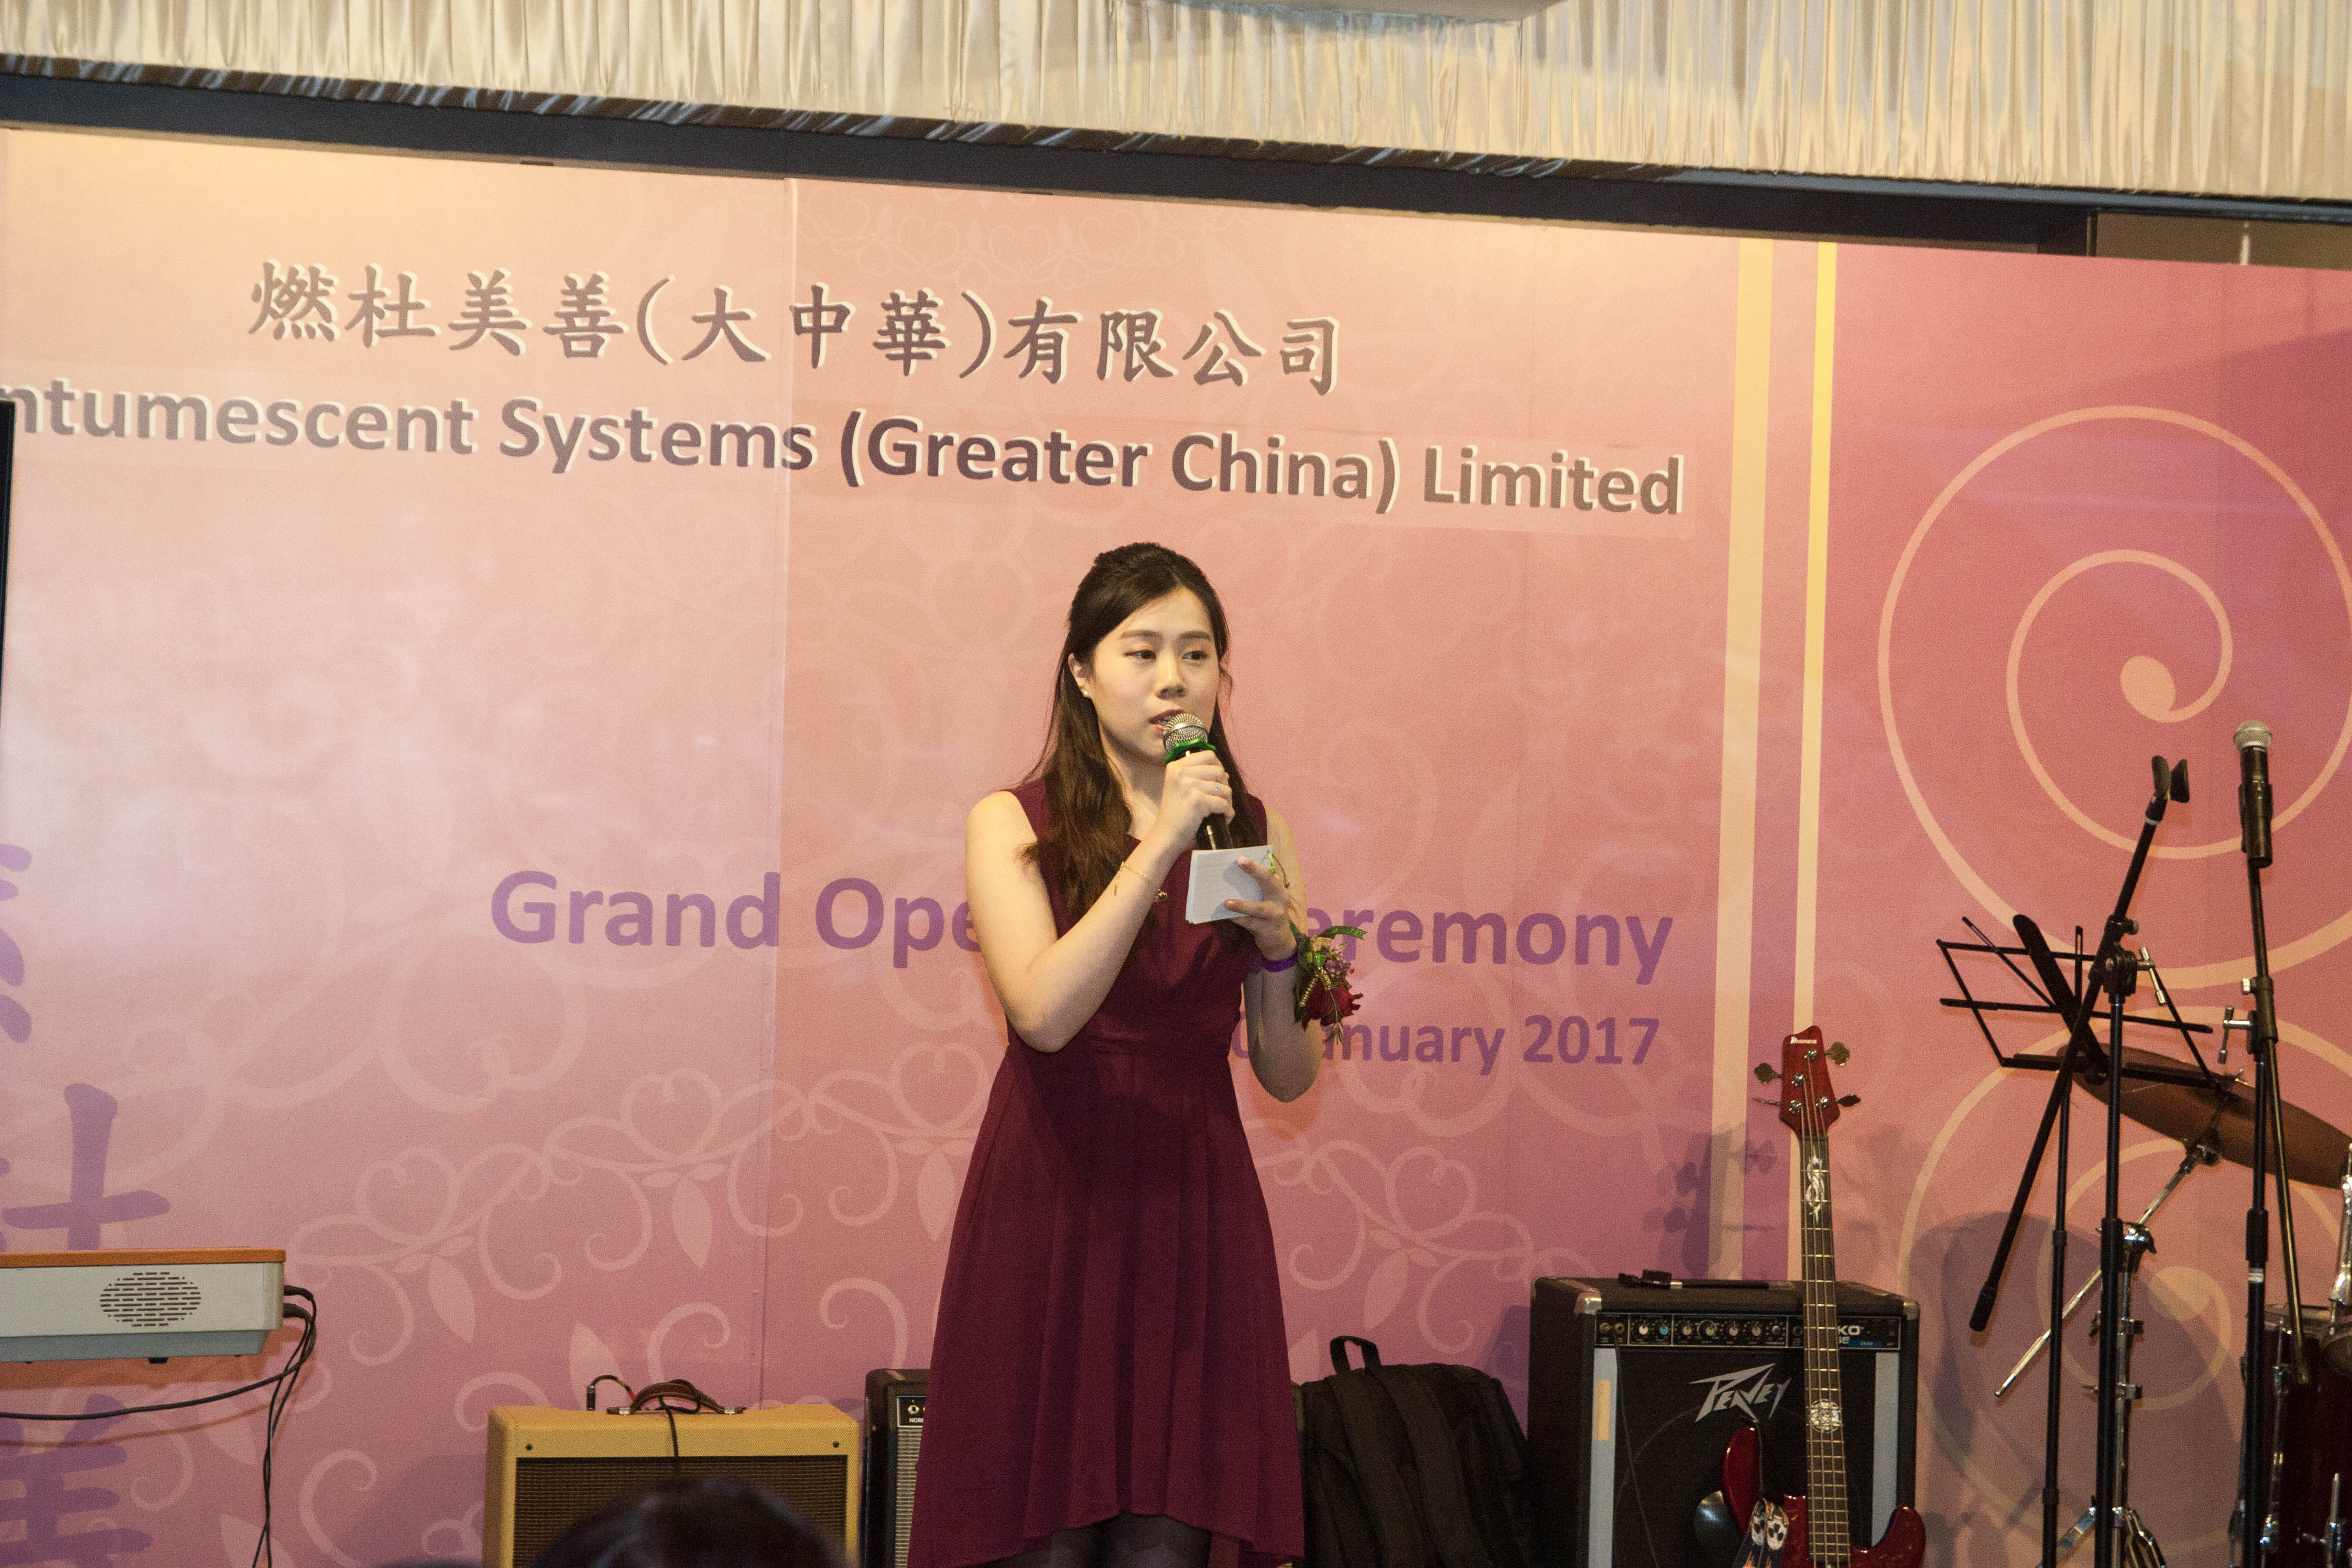 Angela Wu司儀工作紀錄: Grand Opening Ceremony of Intumescent Systems (Greater China) Ltd